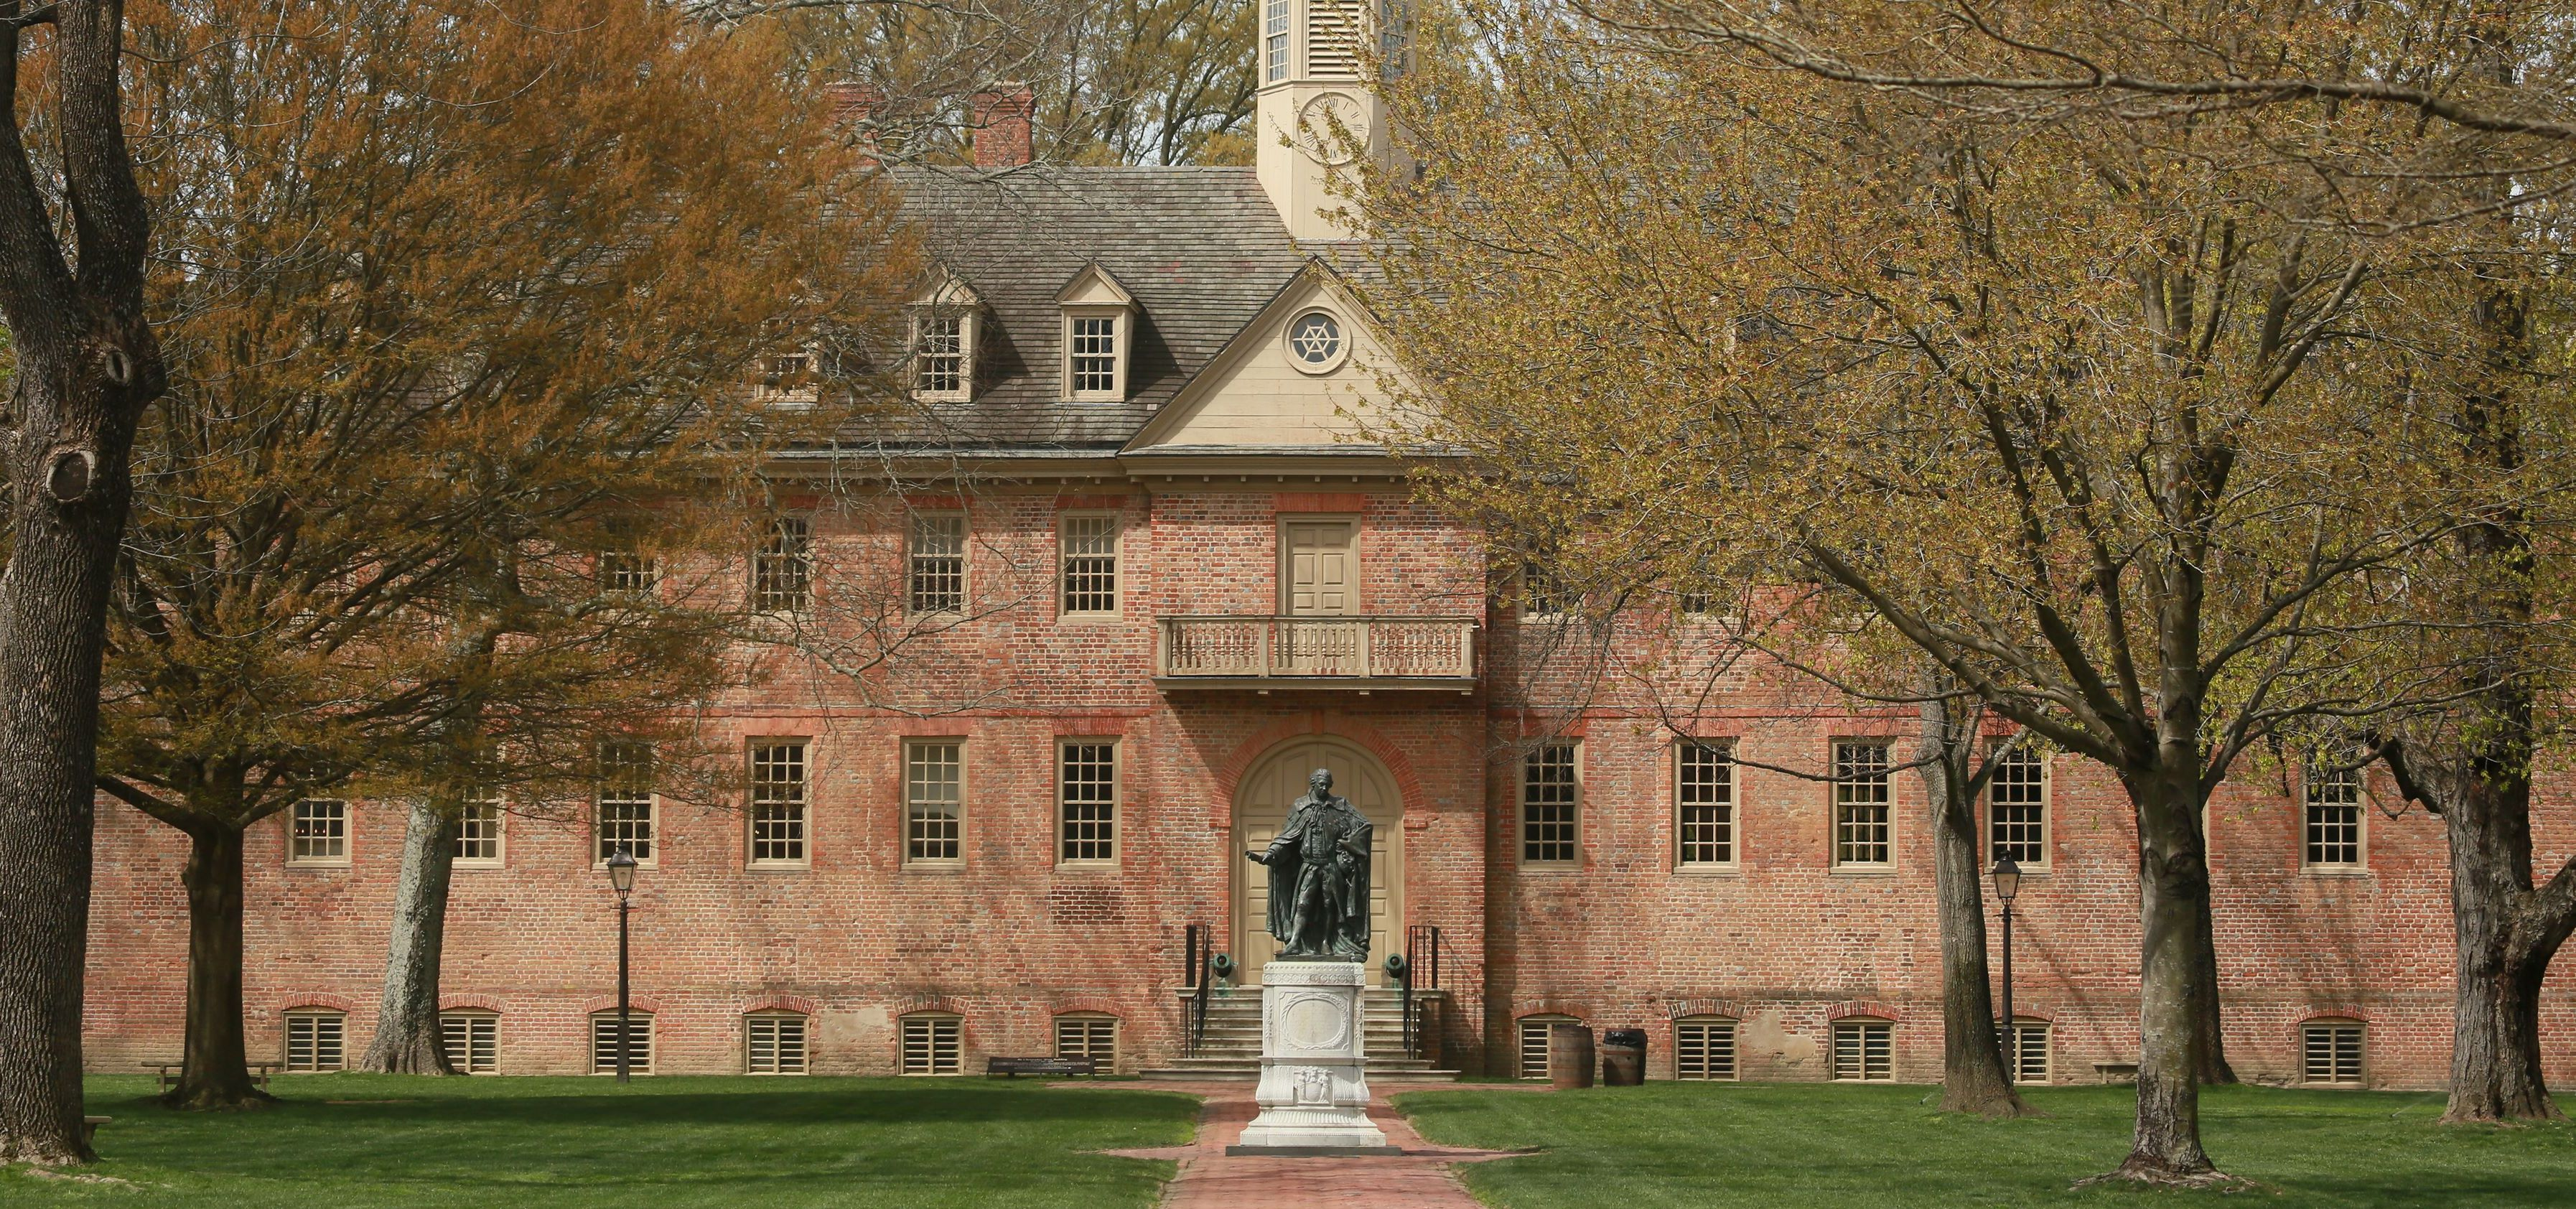 College of William & Mary - Wren Building